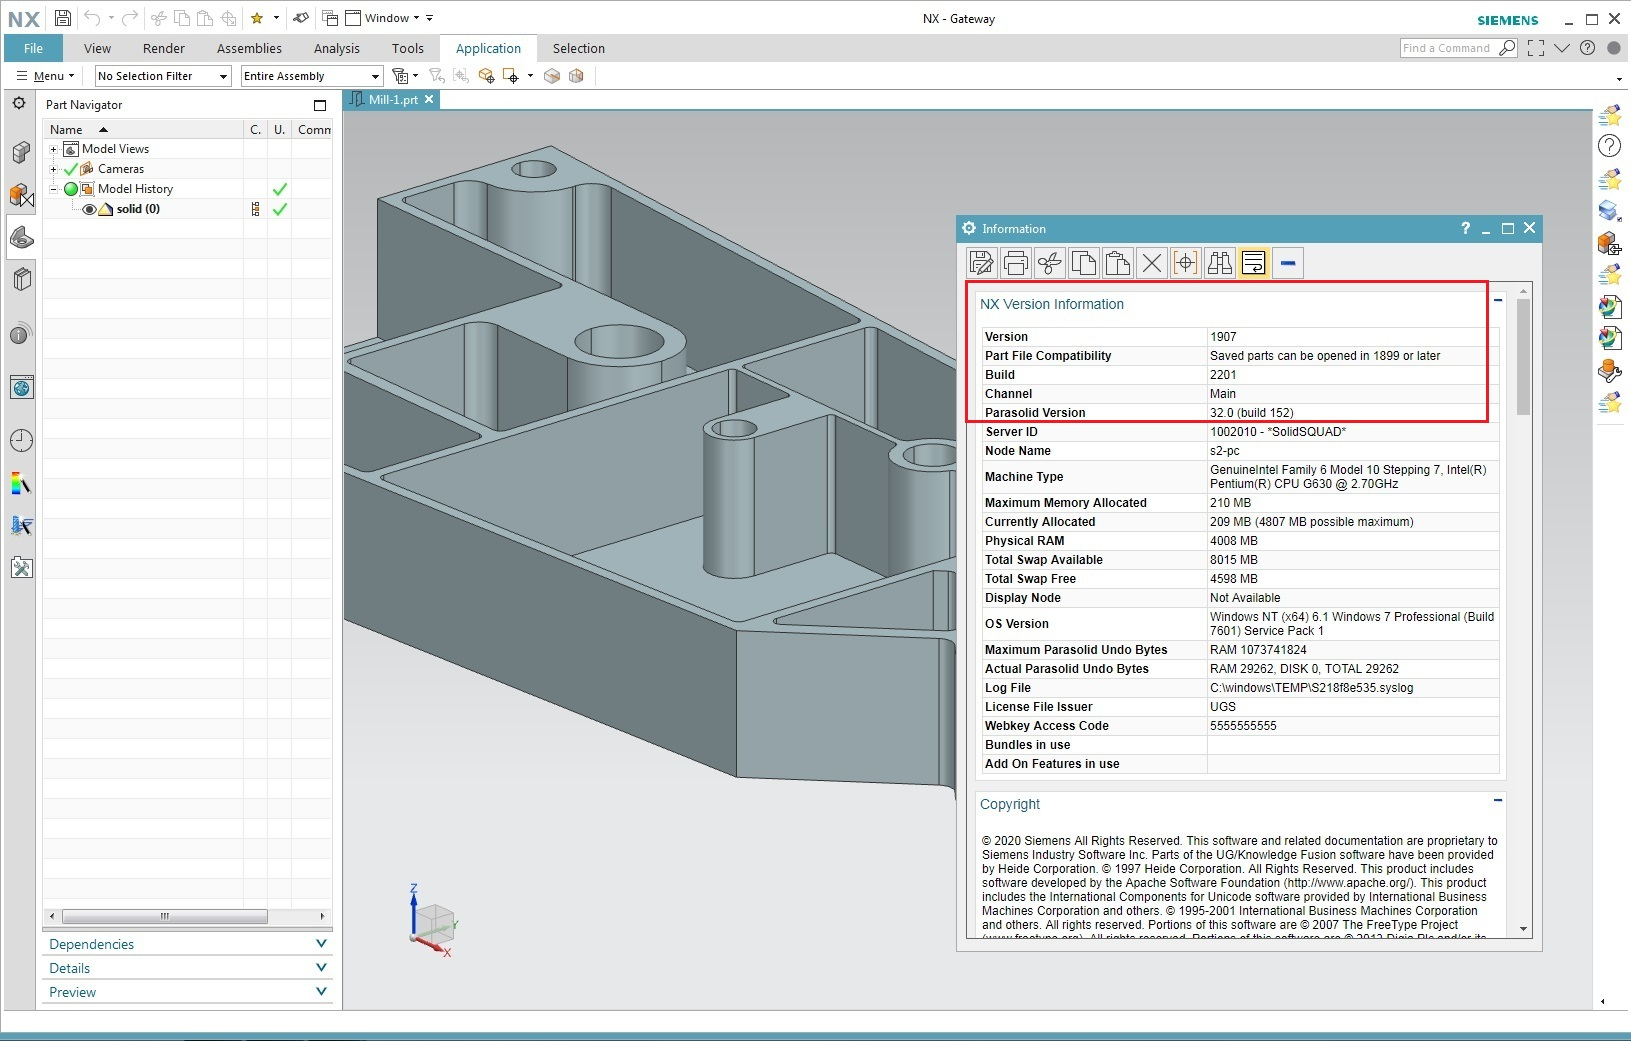 Download Siemens NX 1907 Build 2201 (NX 1899 Series) x64 full license